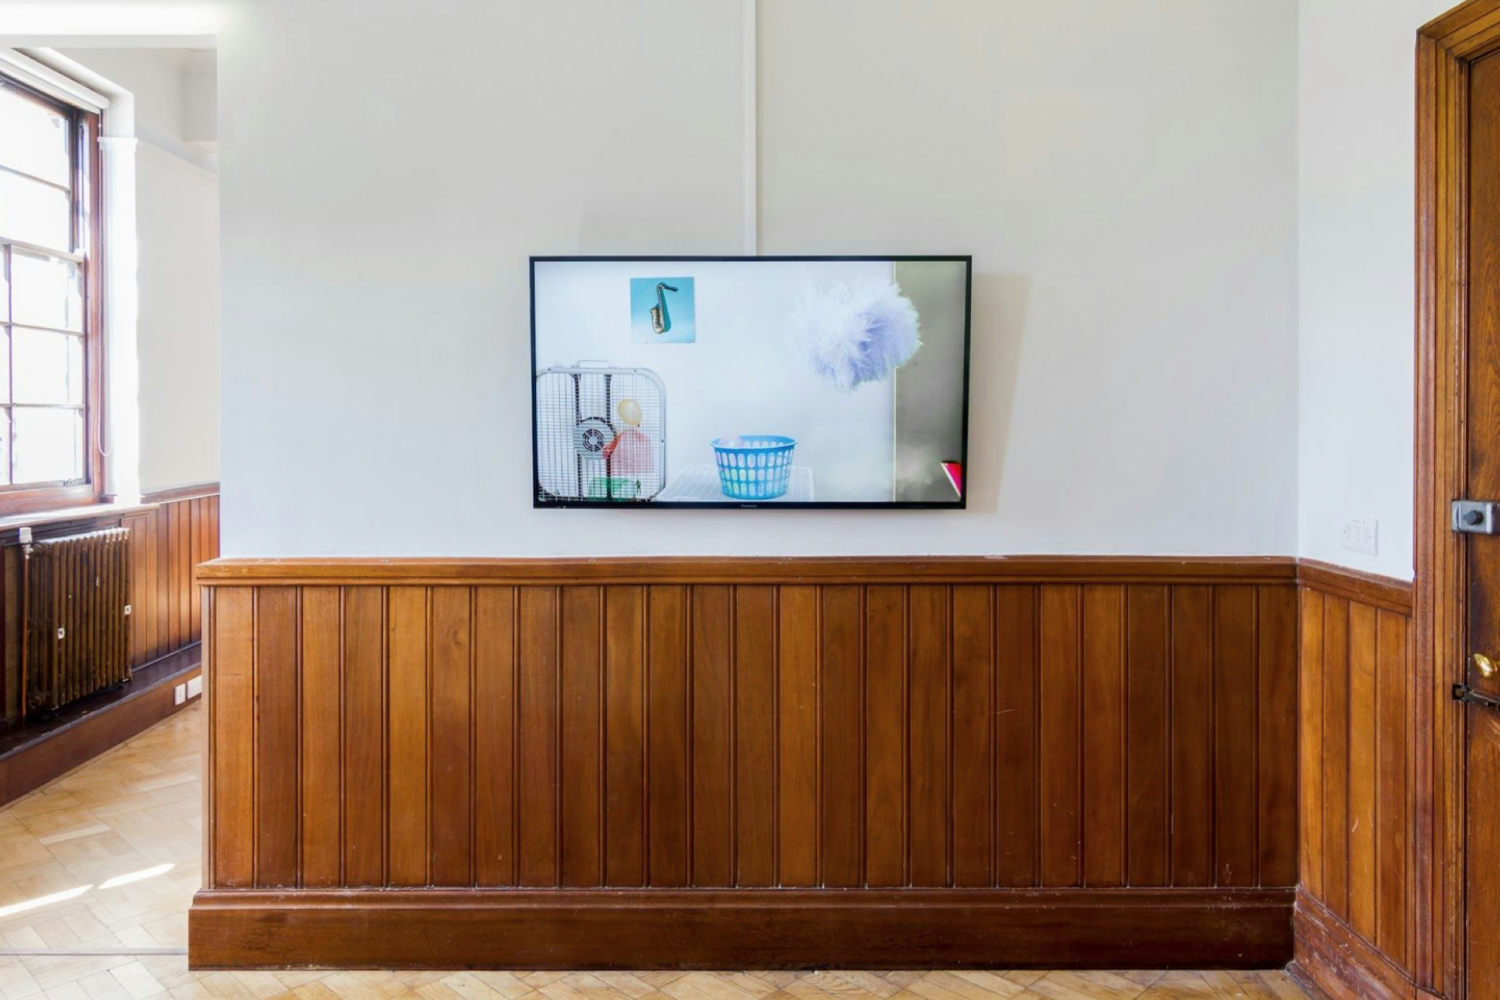 Painting In Time  2015 The Tetley, Leeds (UK)  Co-curated by Sarah Kate Wilson  Artists in exhibition:Polly Apfelbaum, Claire Ashley,Kristina Buch,Kate Hawkins, Robert Chase Heishman and Megan Schvaneveldt,Natasha Kidd,Rob Leech,Lisa Milroy, Yoko Ono, Hayley Tompkins, Jessica Warboys, and Sarah Kate Wilson